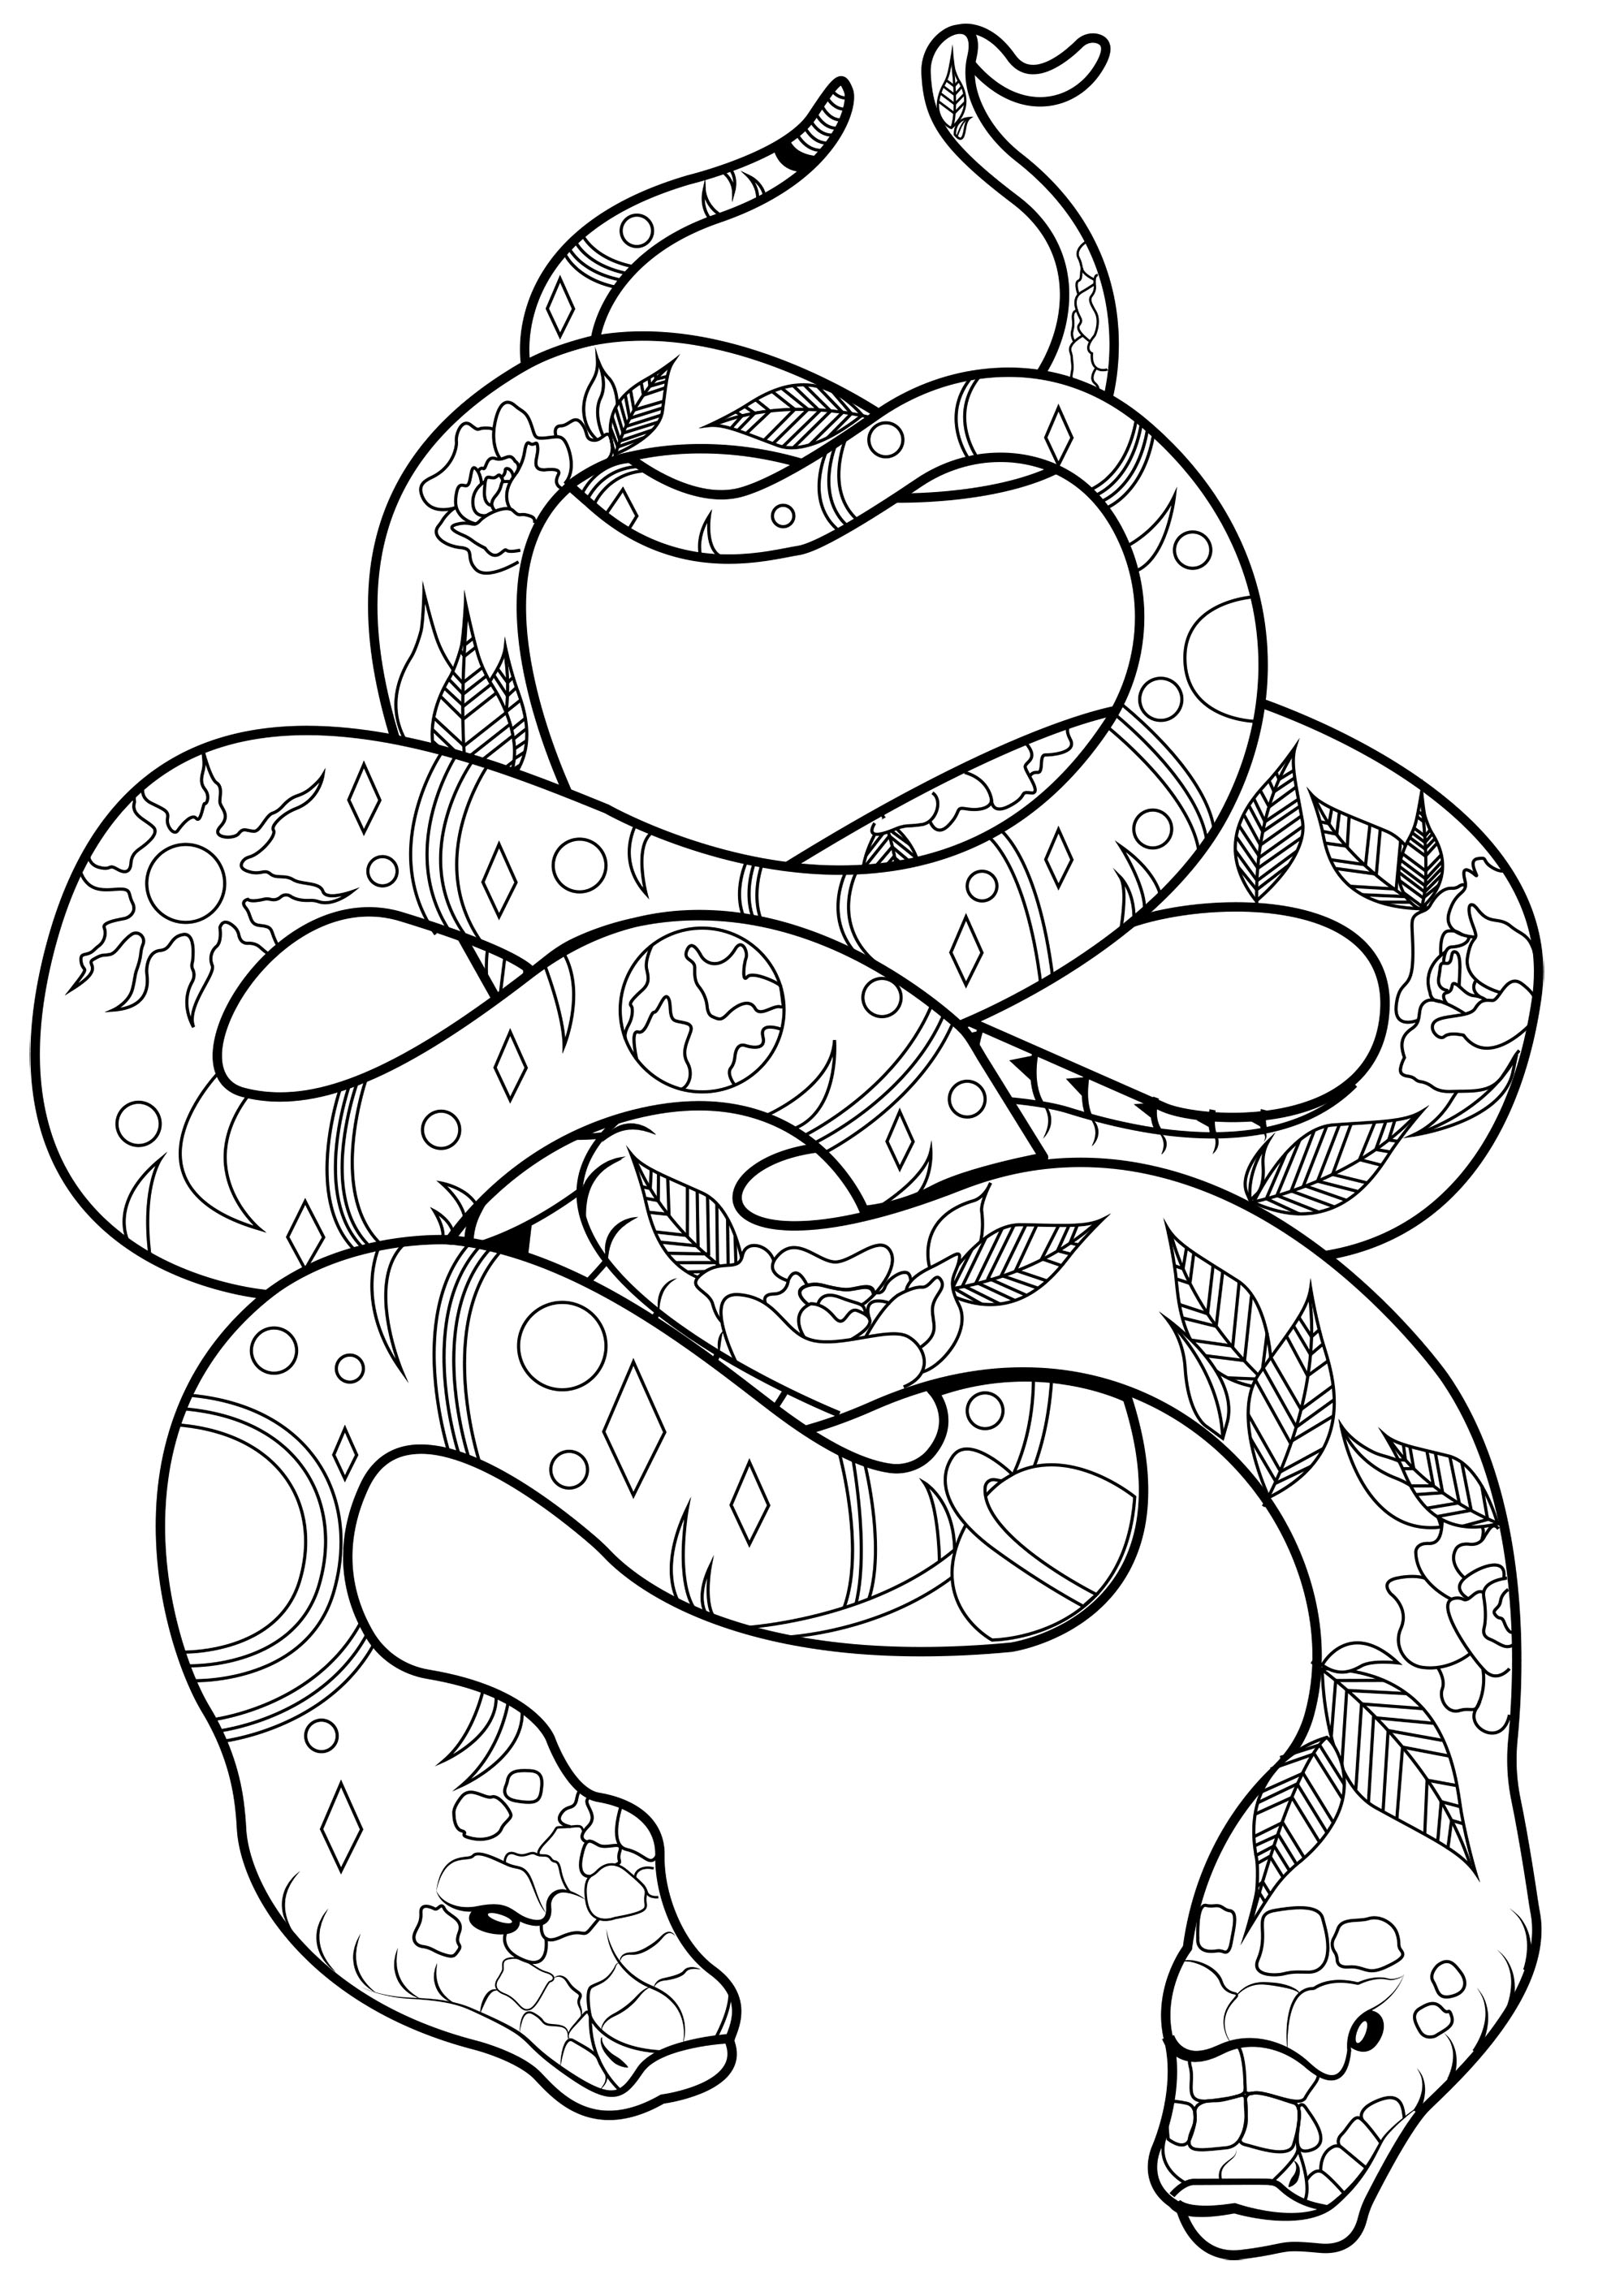 Two magnificent and elegant snakes, linked together, and full of cool patterns to color